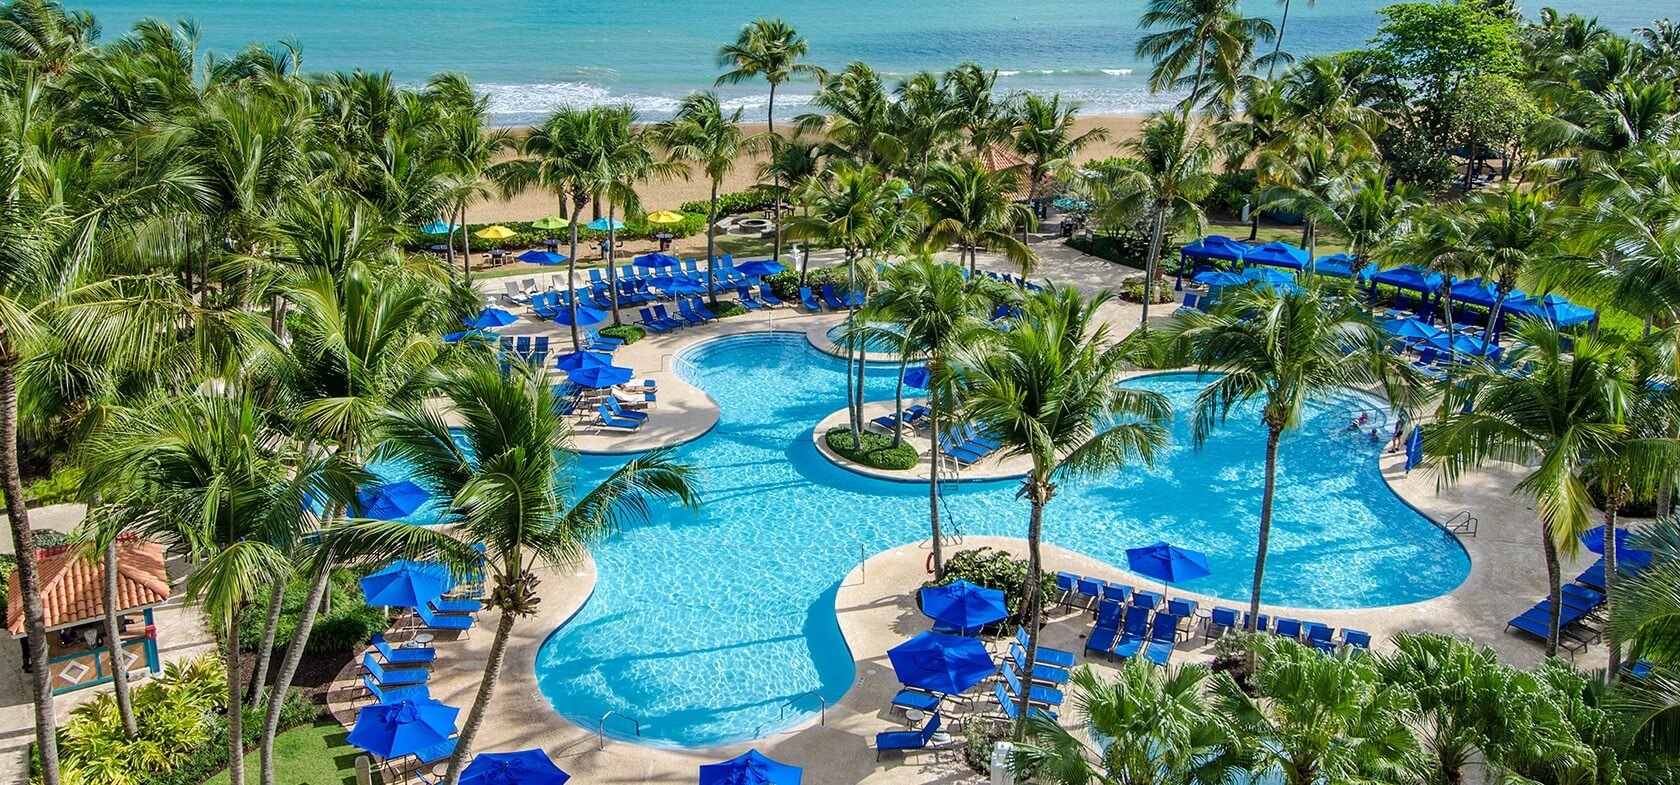 Image courtesy of Wyndham Grand Rio Mar Puerto Rico Golf & Beach Resort. Bookable for just 15,000 Wyndham points per night.